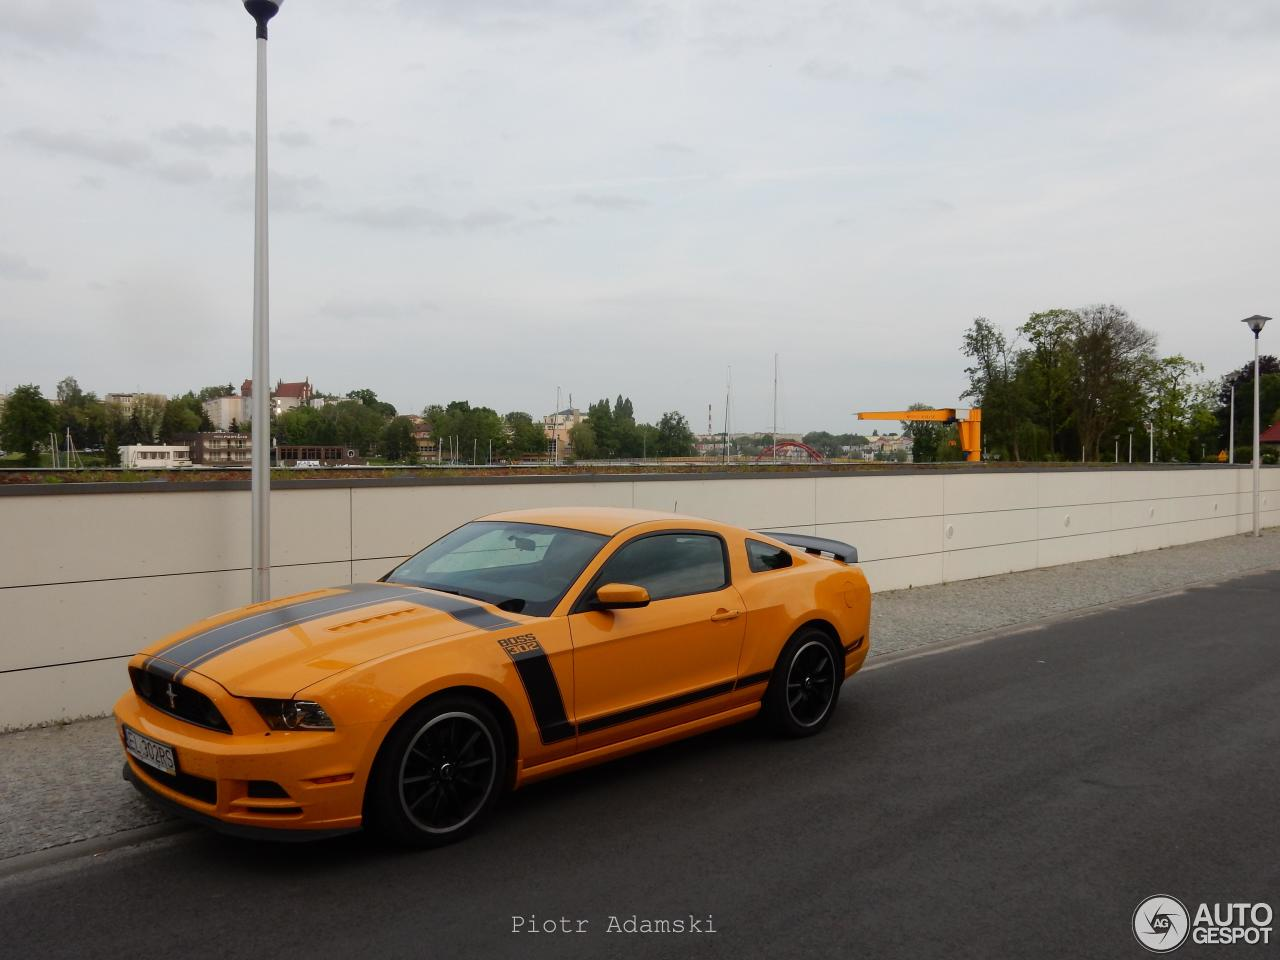 ford mustang boss 302 2013 26 may 2016 autogespot. Cars Review. Best American Auto & Cars Review